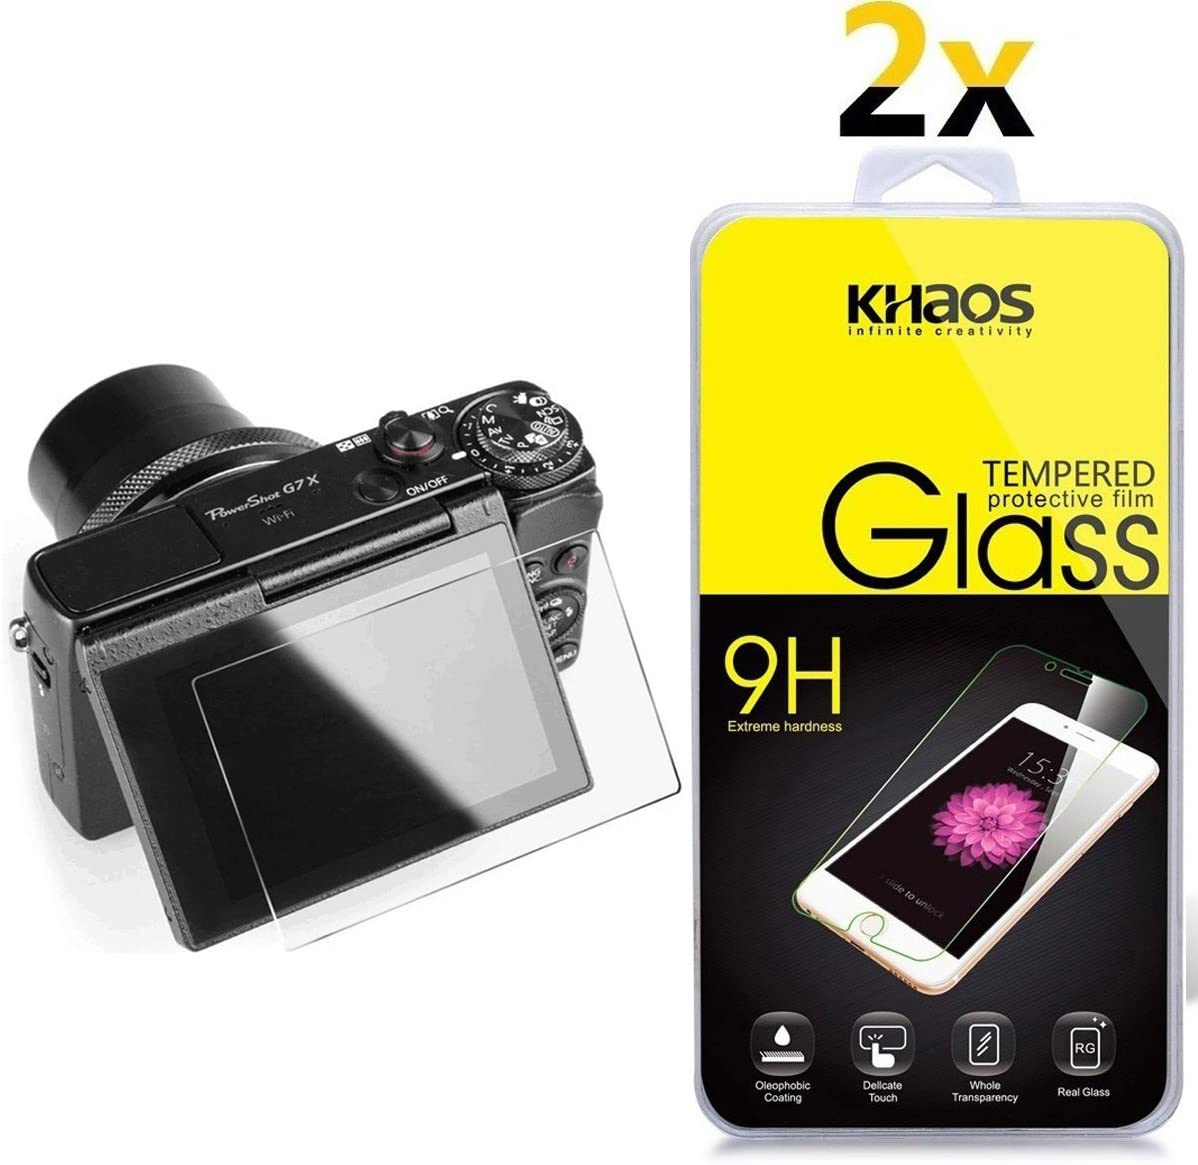 [2 Pack] Screen Protector for Canon G5X G7X G9X, KHAOS Tempered Glass Screen Protector for Canon PowerShot G5X G7X G9X G7 X Mark II 9H HD-Clear Ant-Scratch Glass Protector